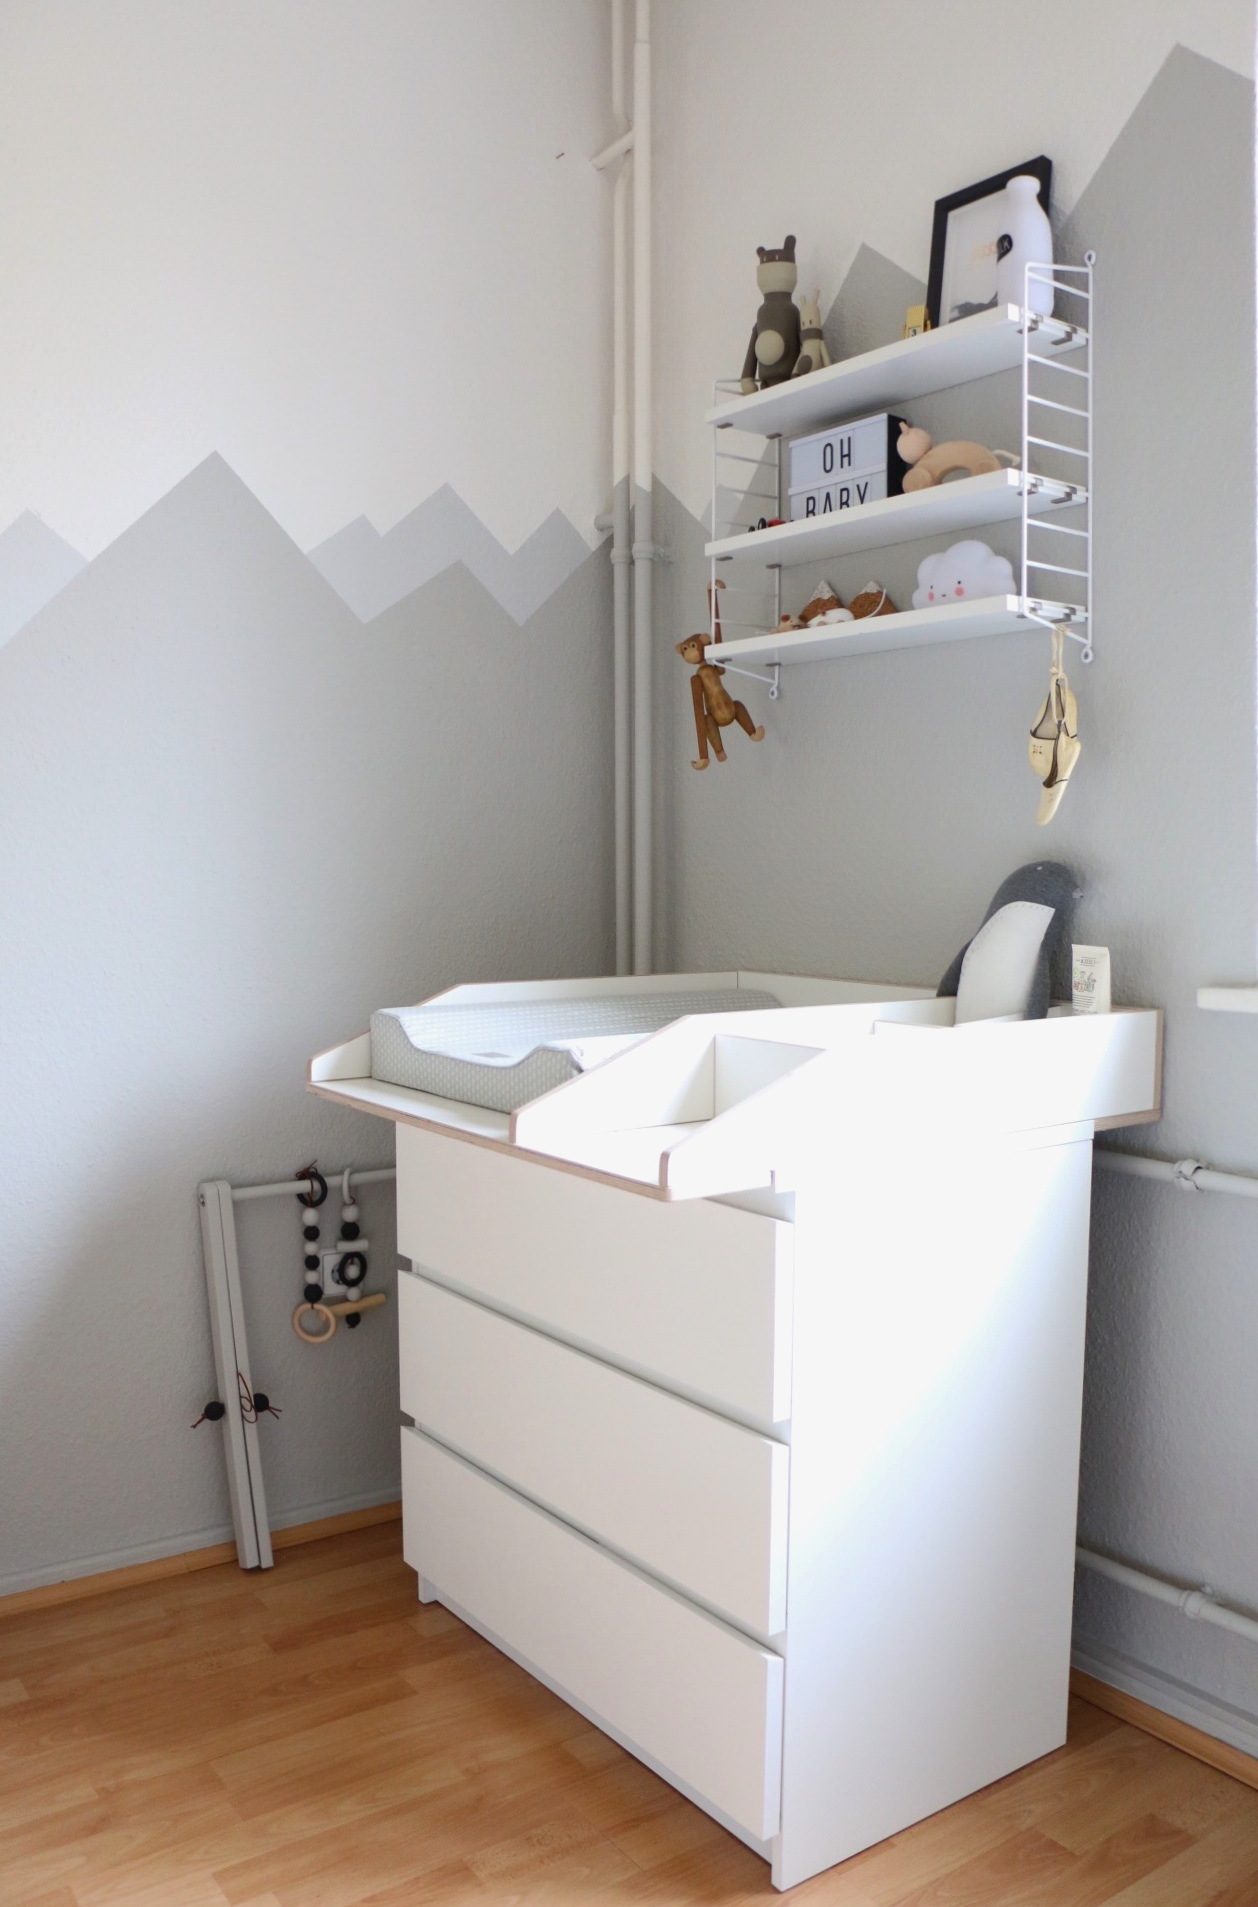 Mountain Nursery Wallpaint Wandgestaltung Im Babyzimmer Eat Blog Love